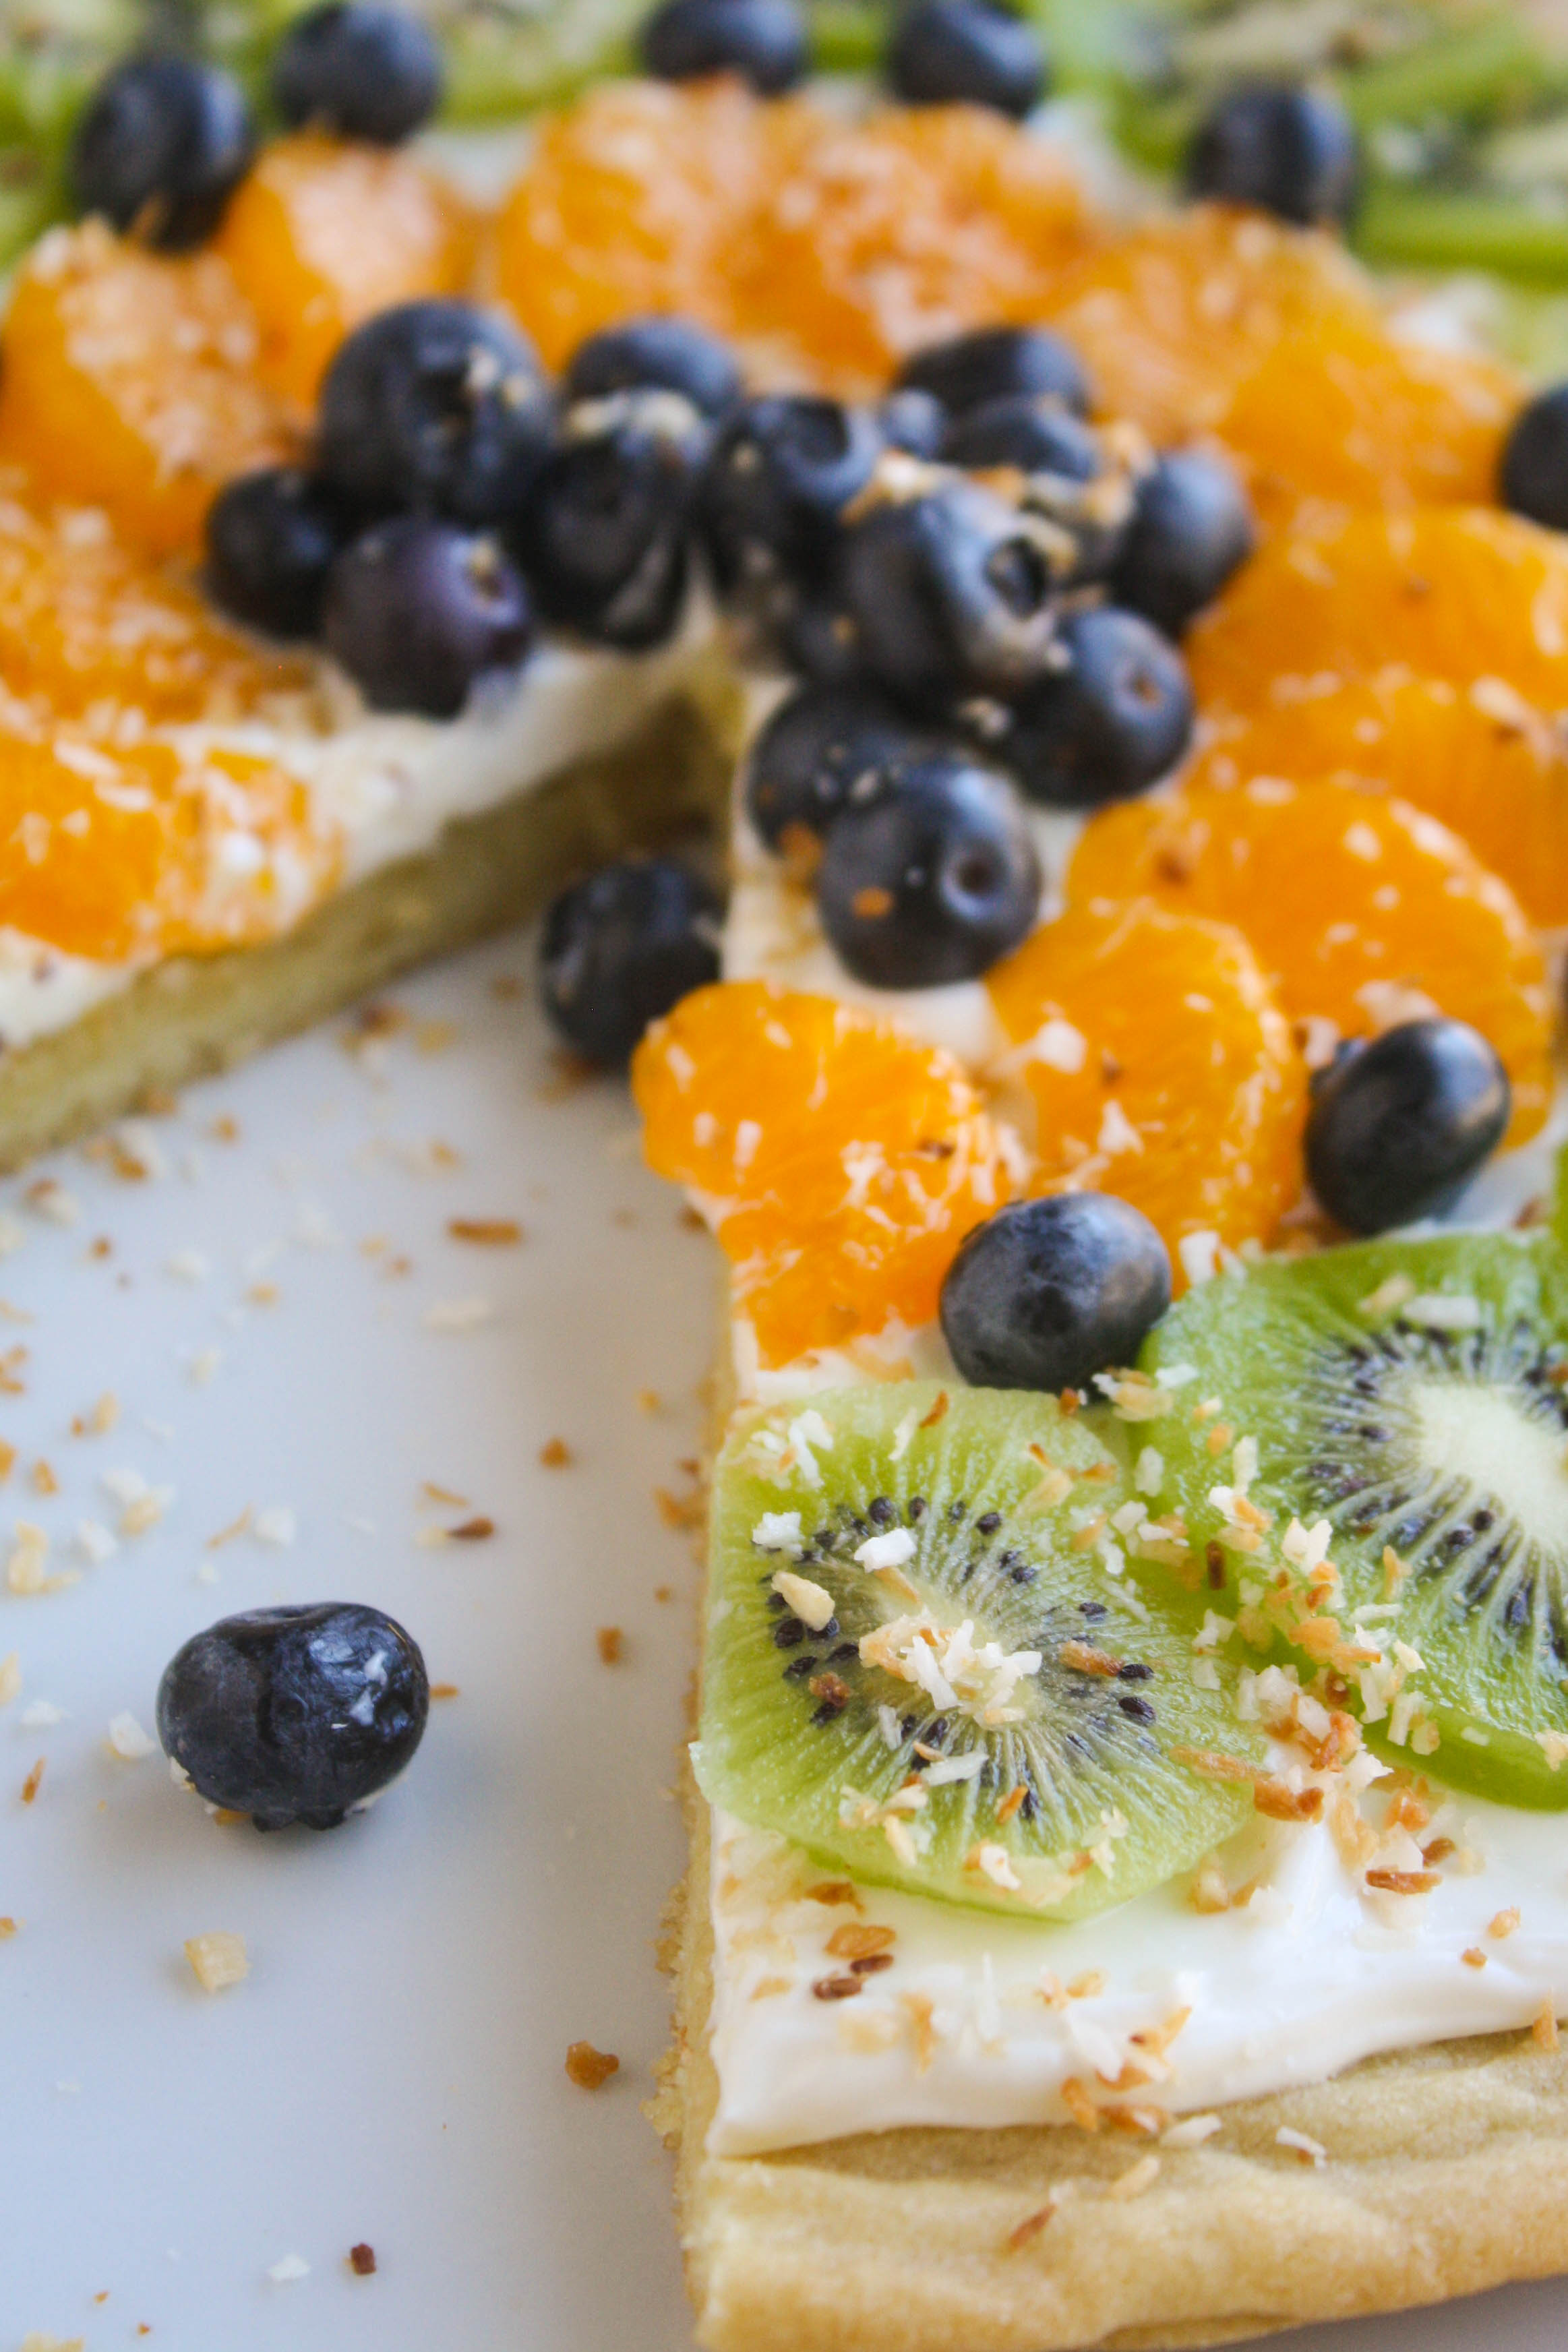 Sugar Cookie Fruit Pizza is a delicious dessert! You'll want more than one slice of this sugar-cookie-crust and fruit treat!